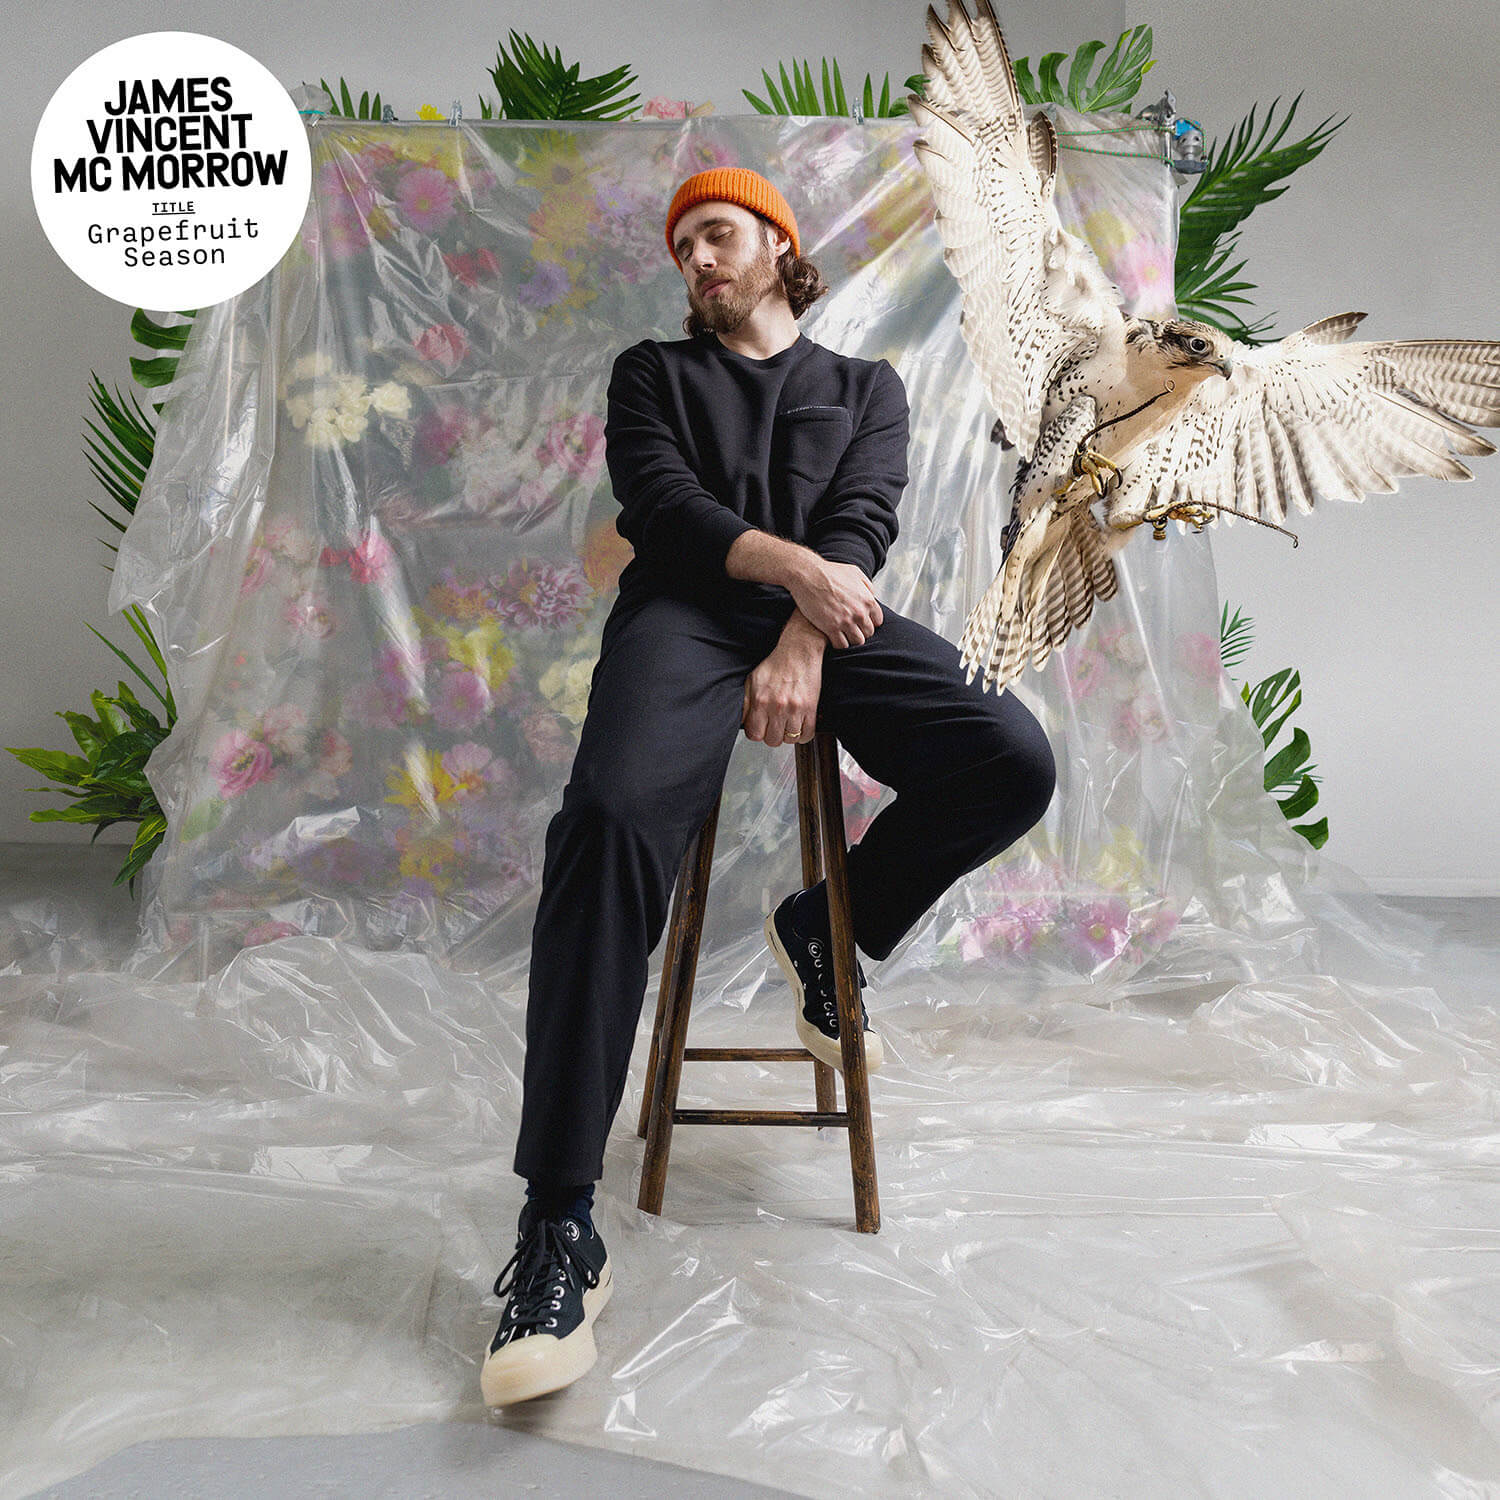 Grapefruit Season by James Vincent McMorrow Album review by Adam Williams for Northern Transmissions